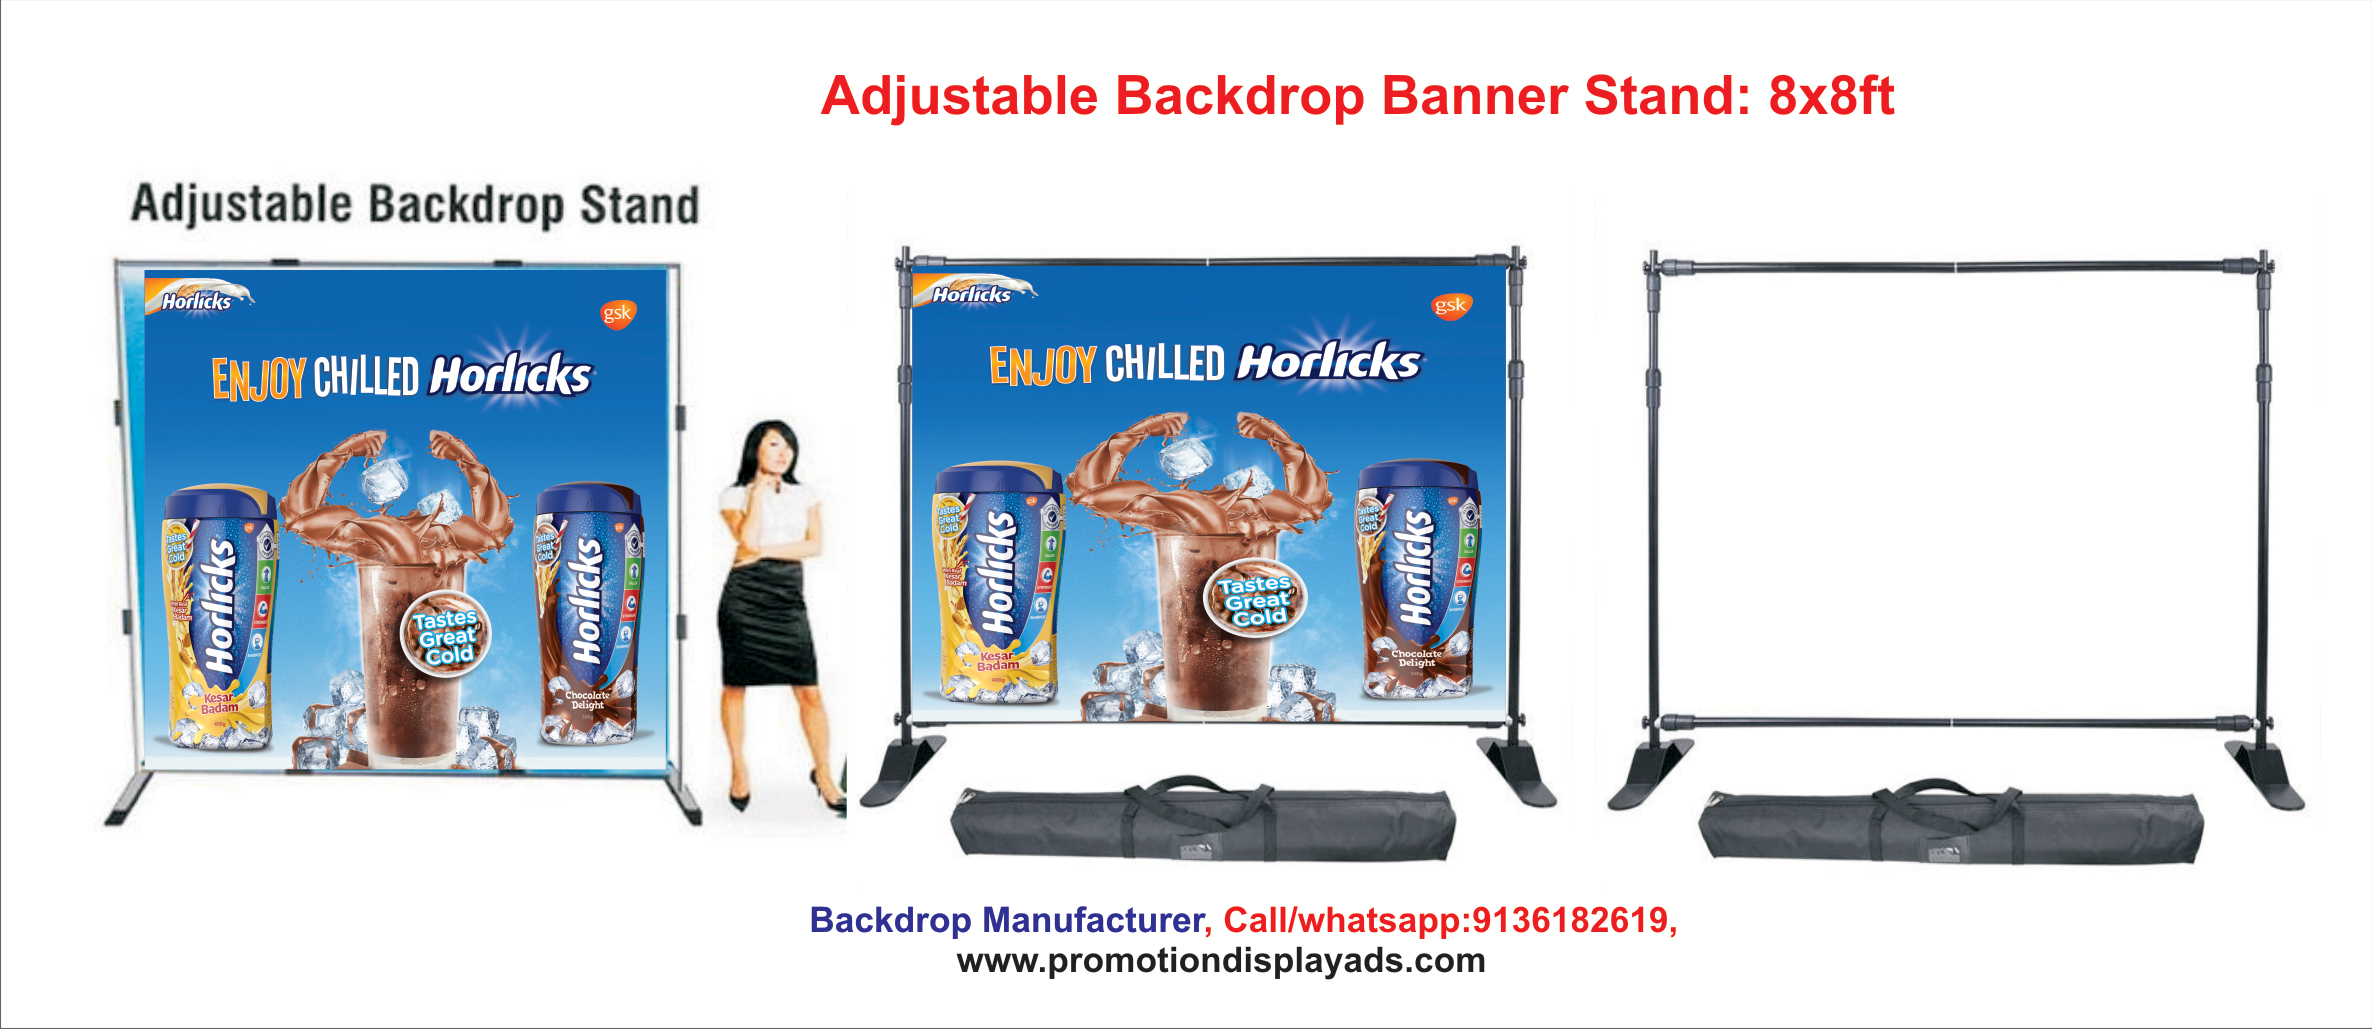 Adjustable Backdrop Banner Stand Pop Up Display Stand